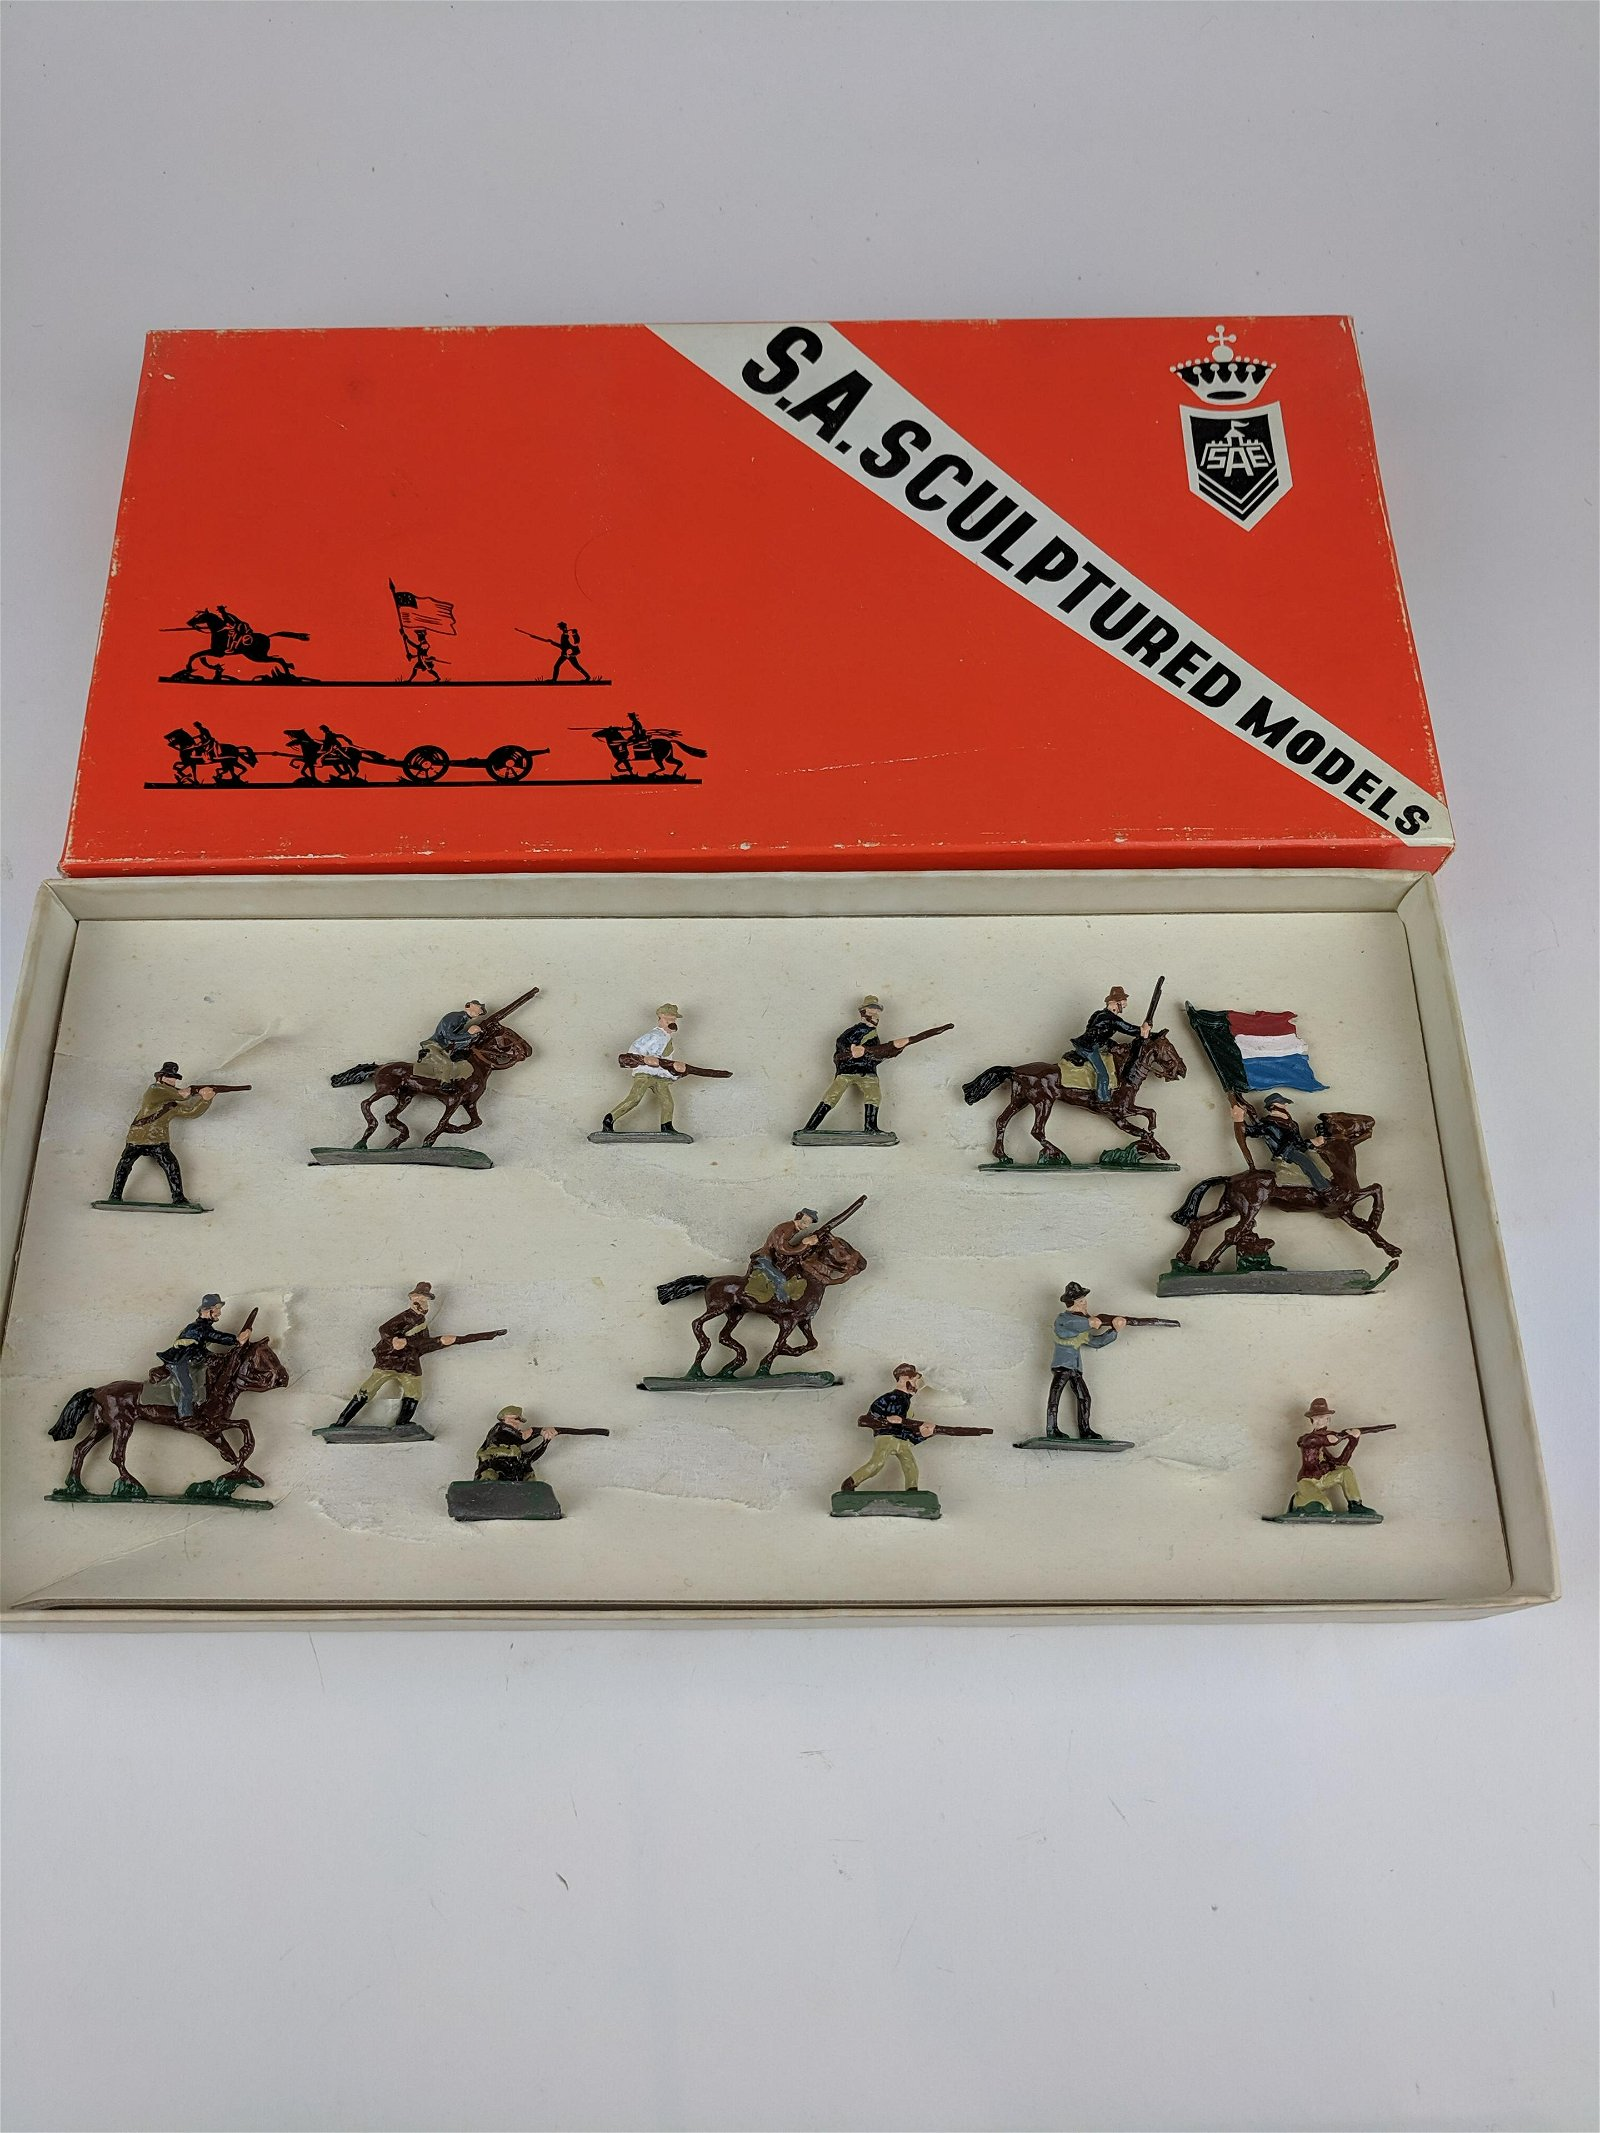 SAE 2400 South Africa Boers 1900